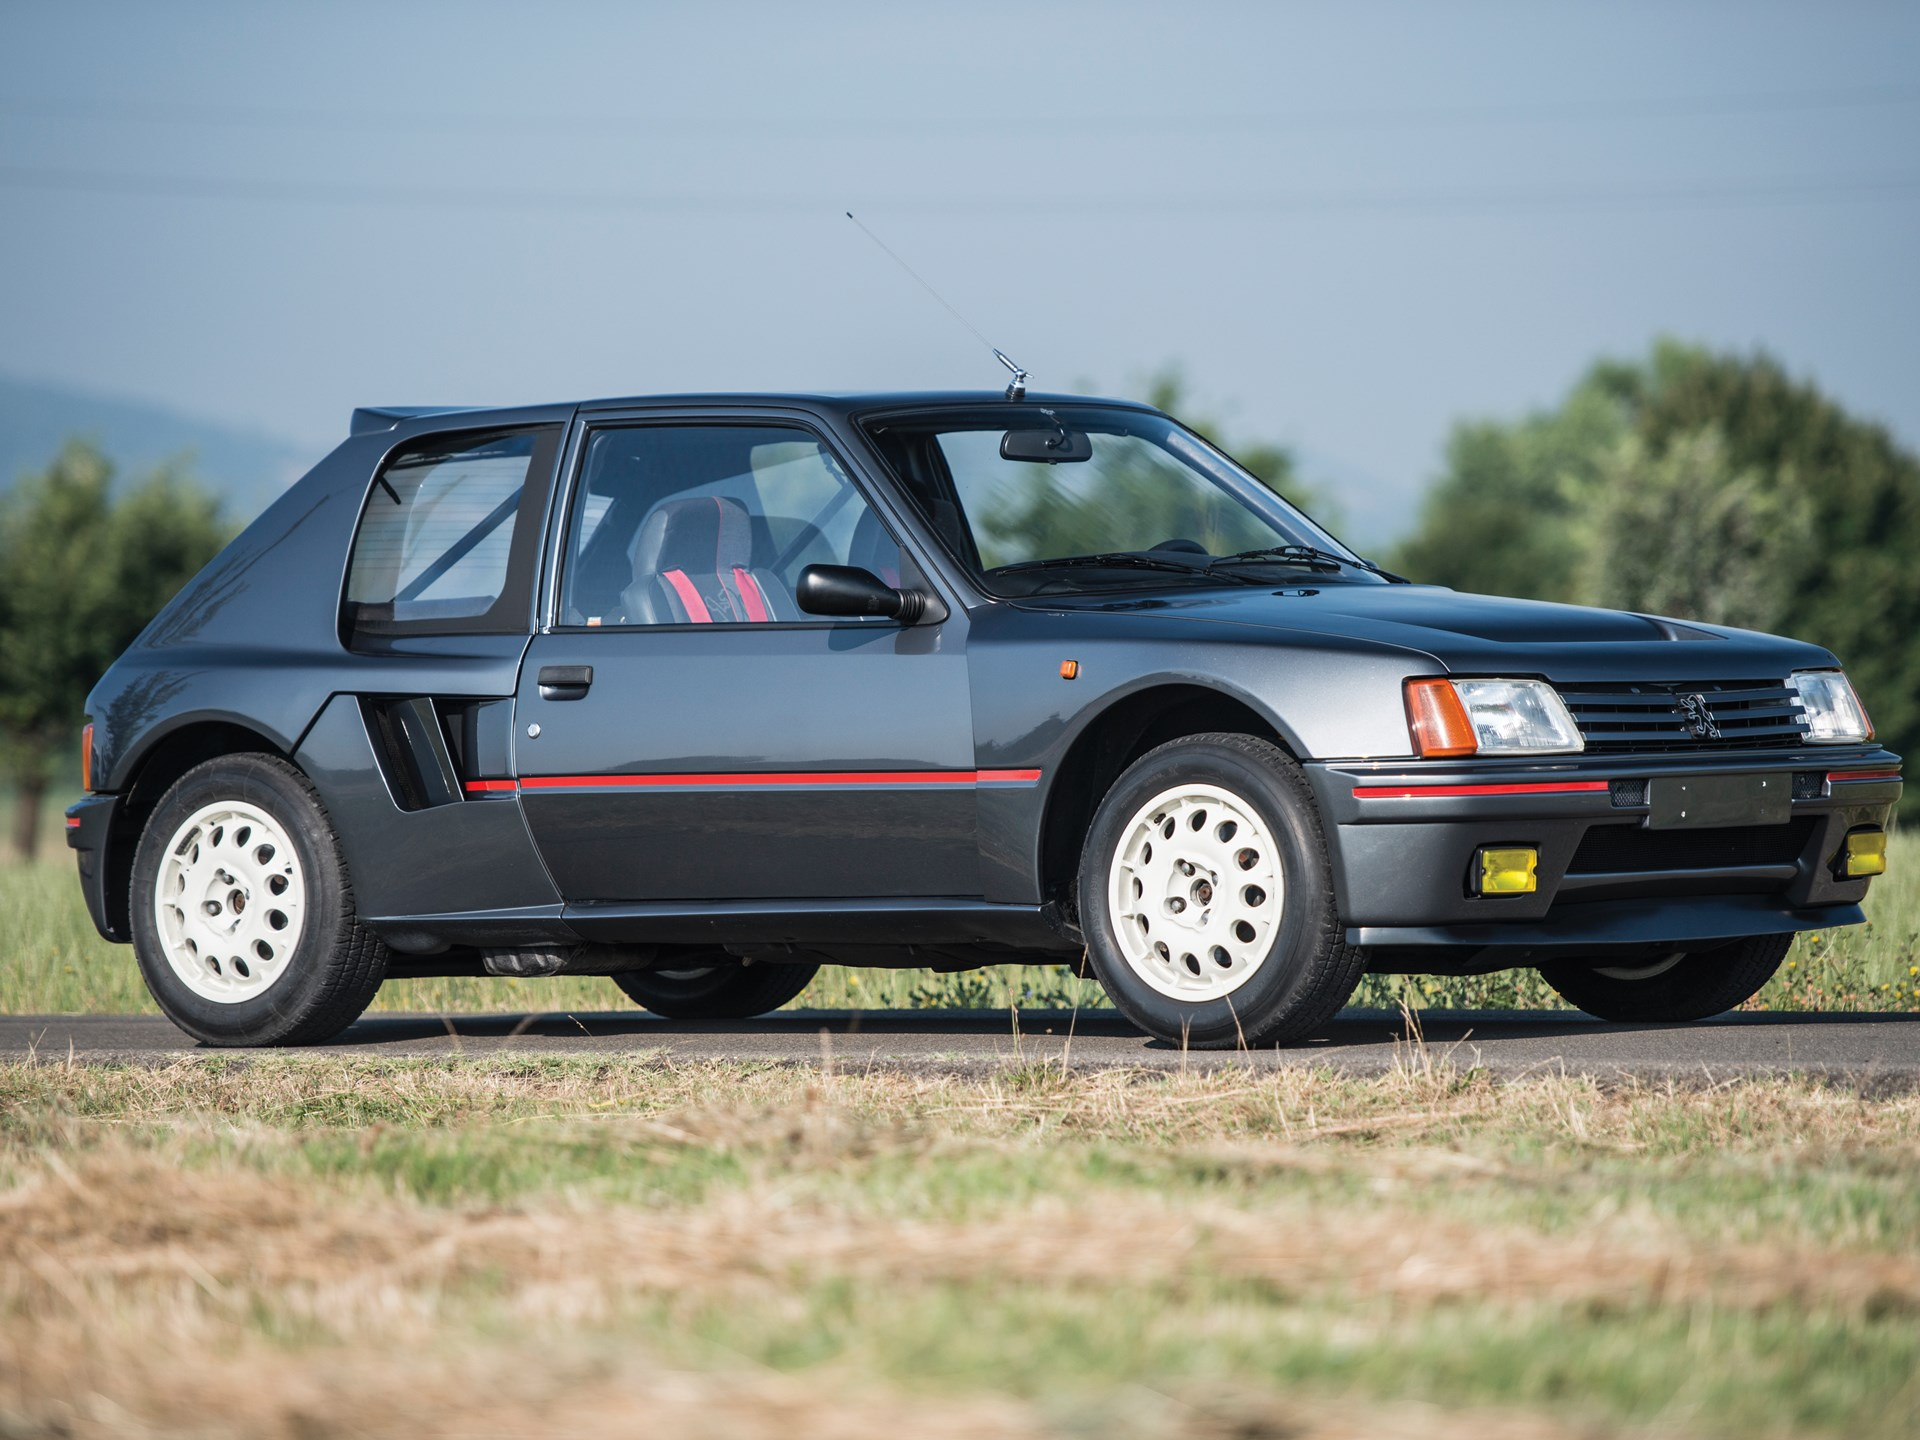 rm sotheby's - 1984 peugeot 205 turbo 16 | london 2015